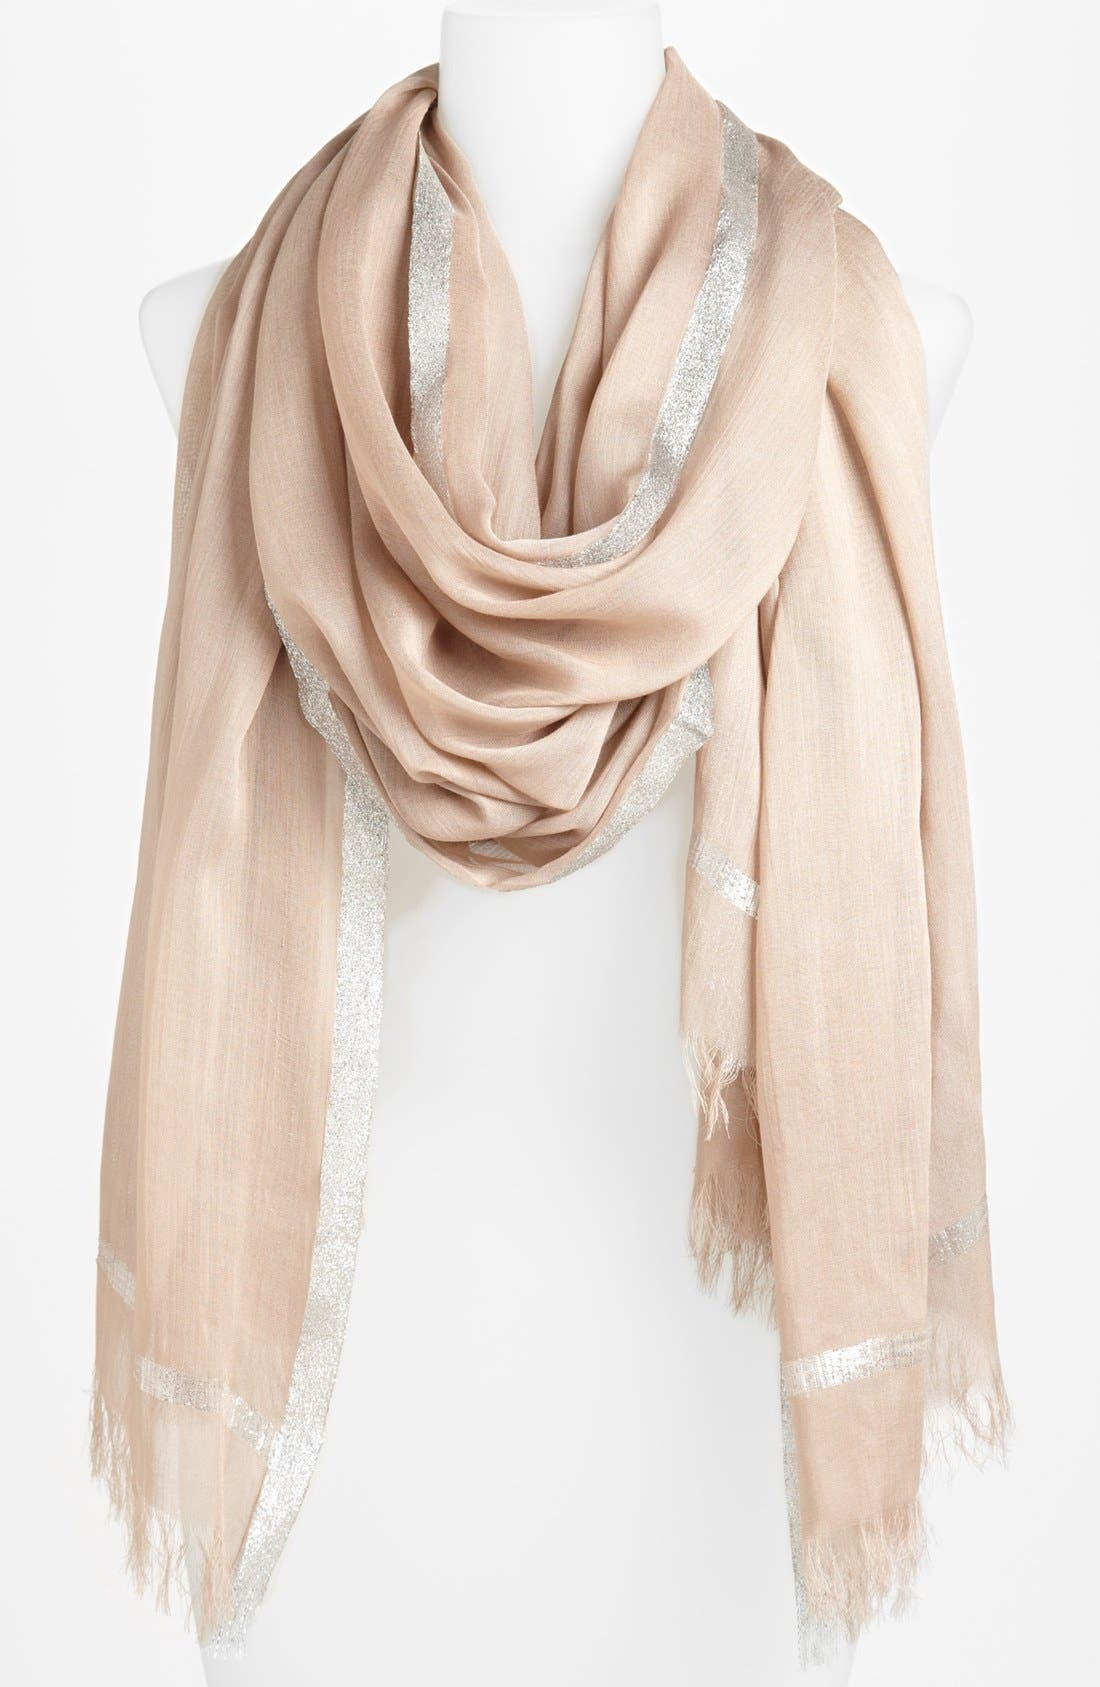 Main Image - Roffe Accessories Silver Trim Scarf (Special Purchase)